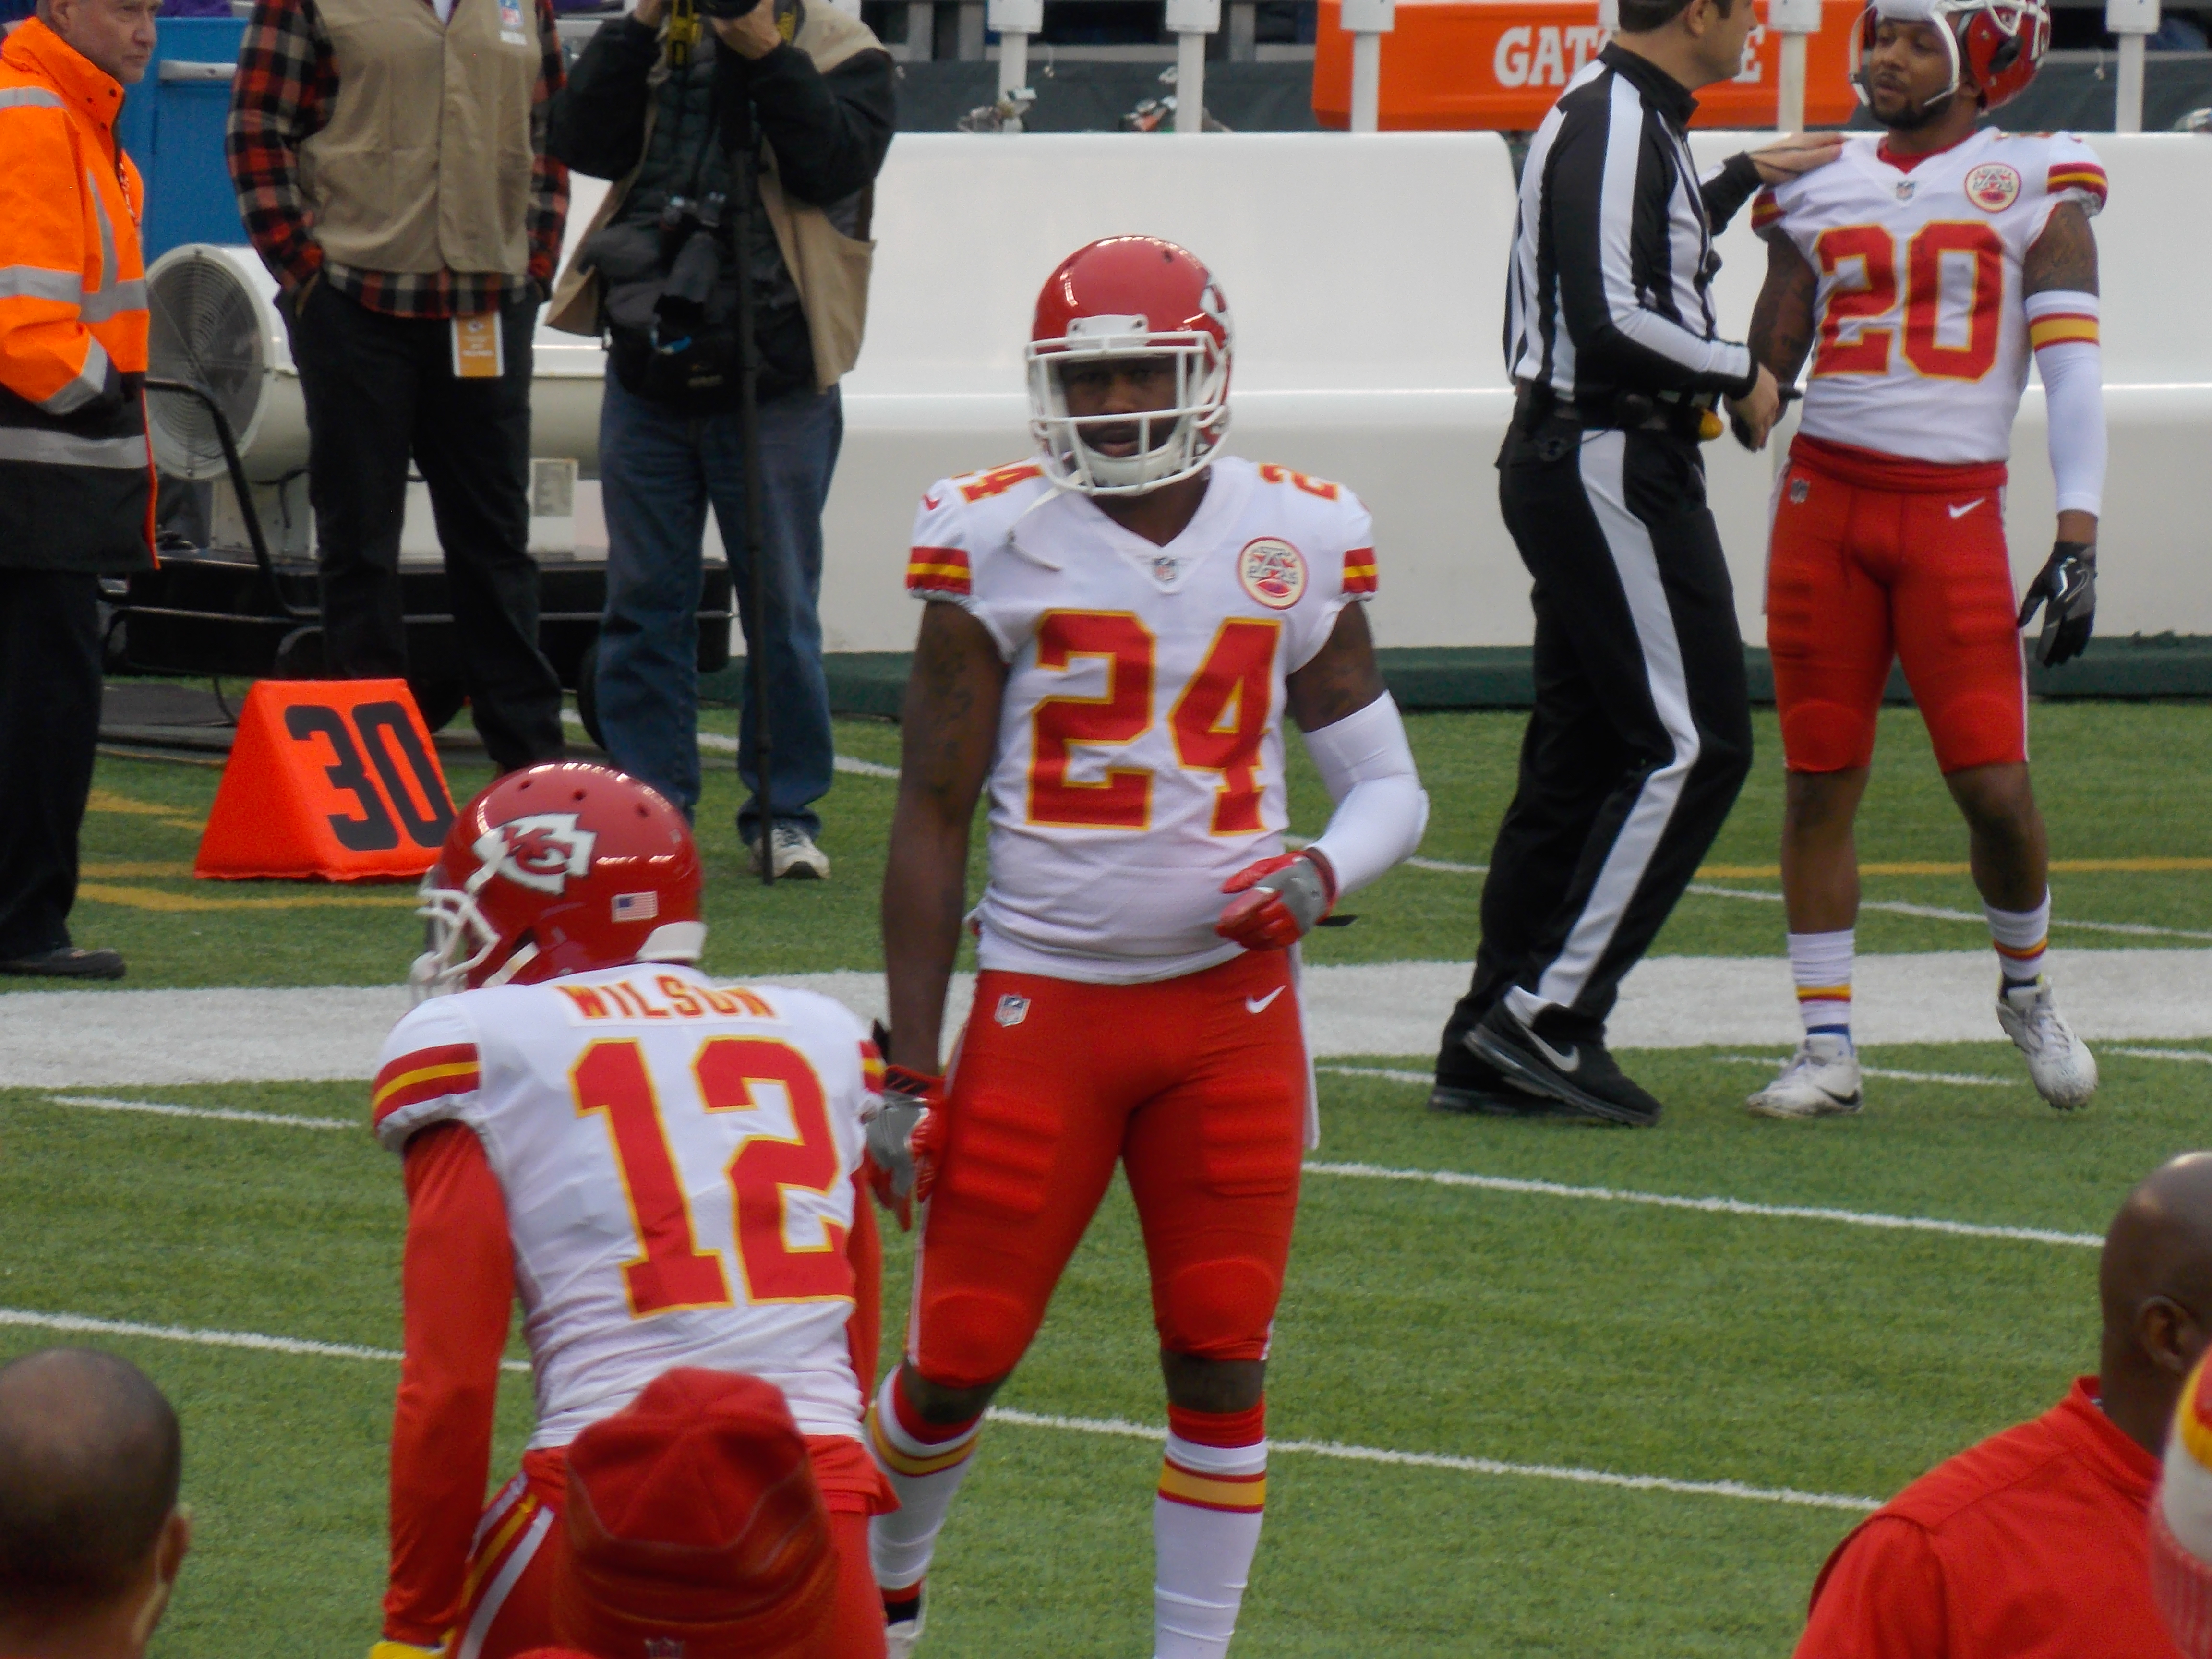 cfc5a930a747 Fișier Darrelle Revis  first game with the Chiefs 12-3-2017.jpg ...